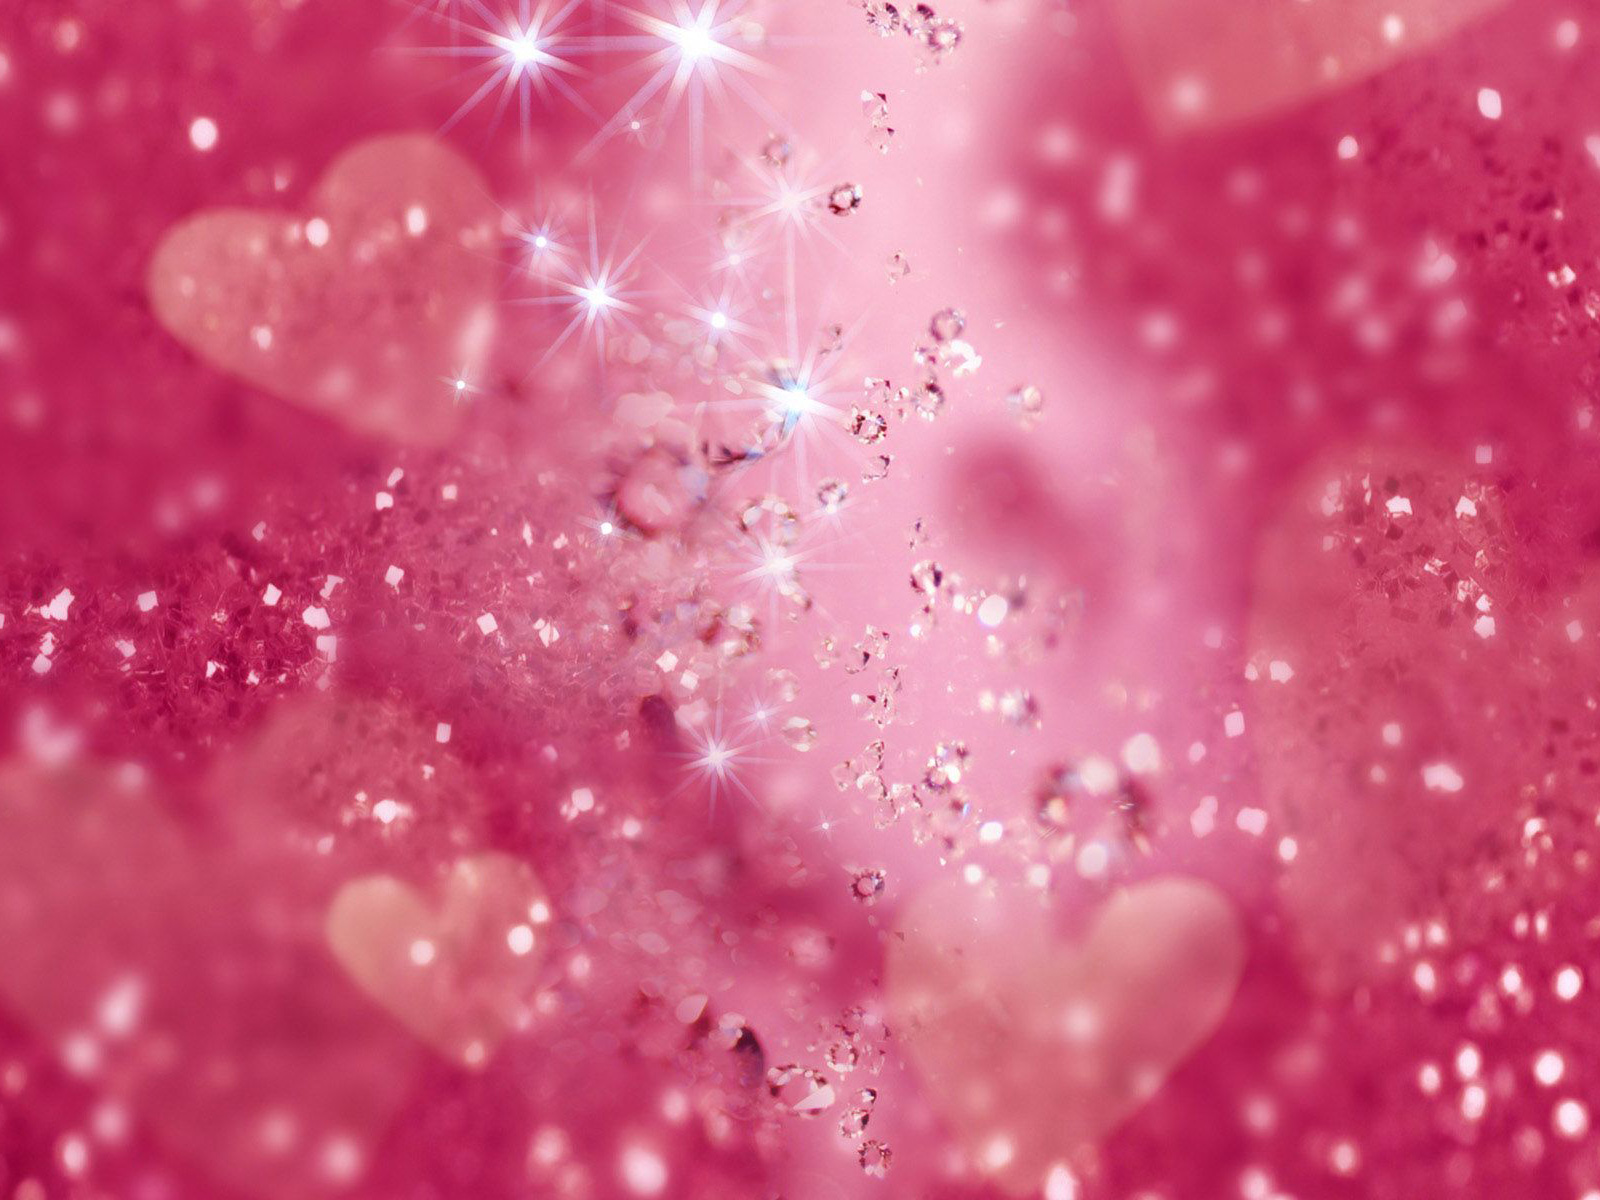 hot pink wallpapers for desktop - photo #6